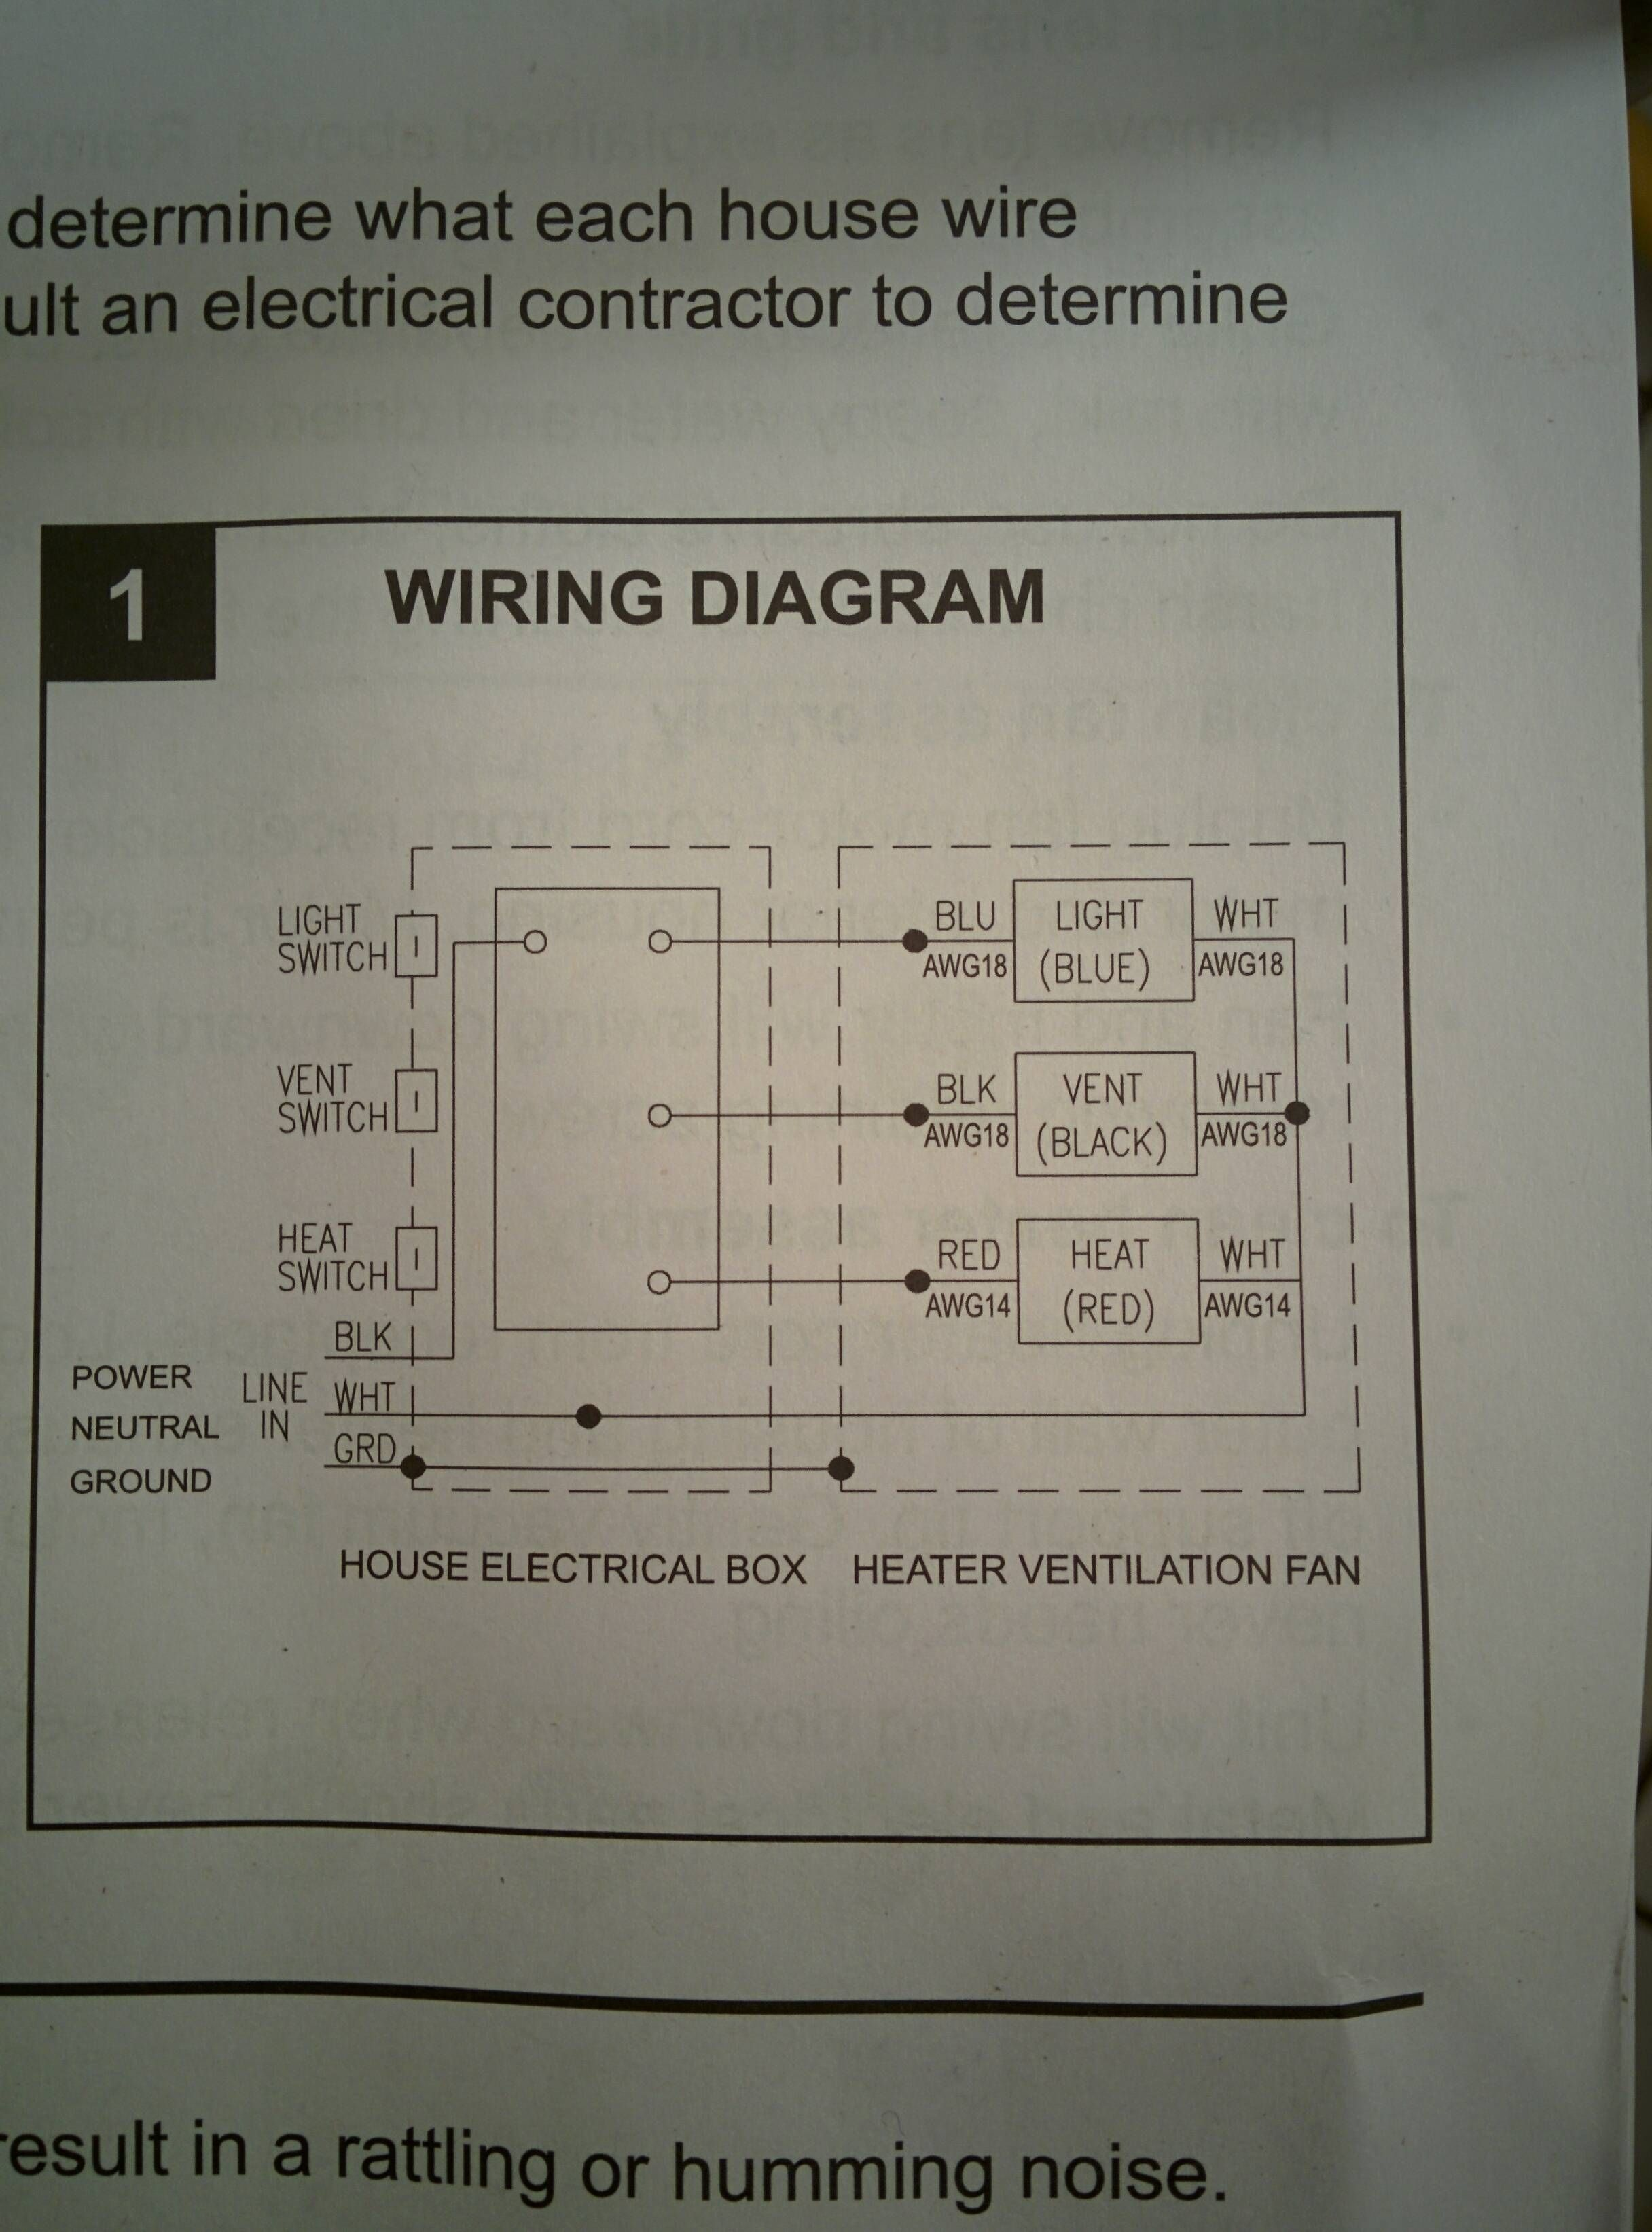 7c1211234f5ed598ccadd7c25b69a3d6 bathroom light fan heater wiring onlinecompliance info